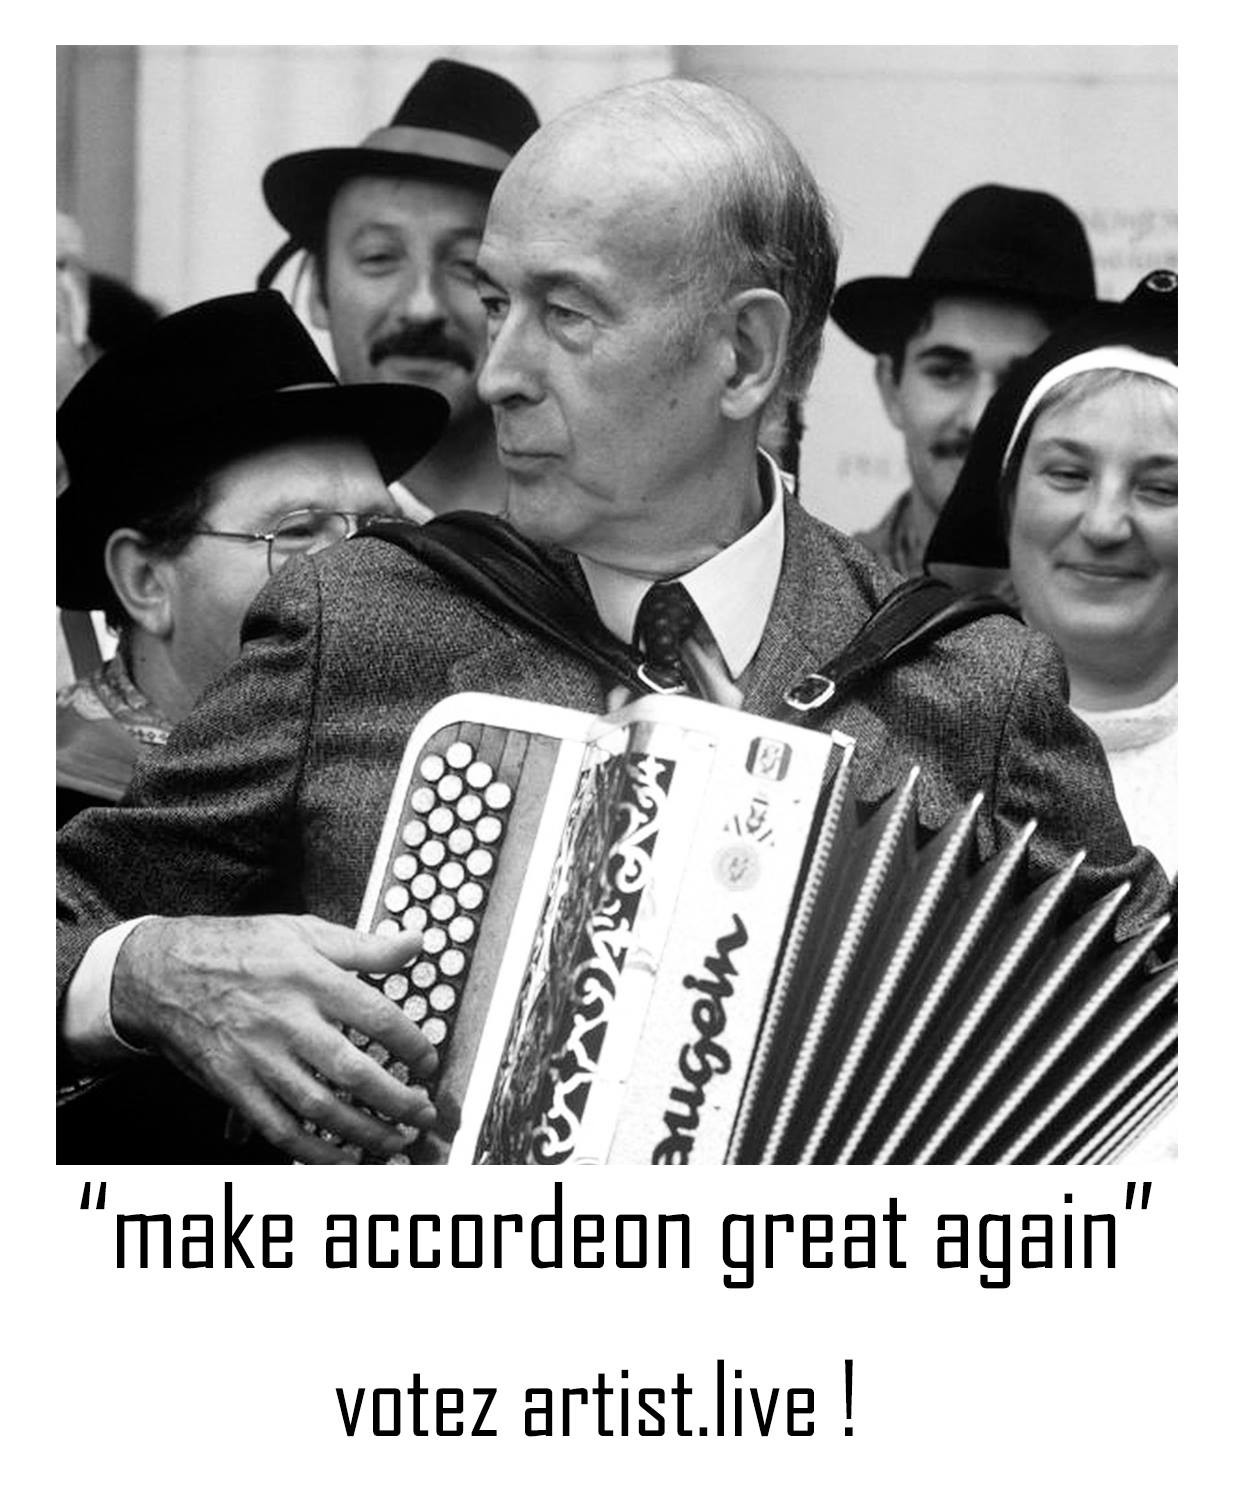 make accordeon great again